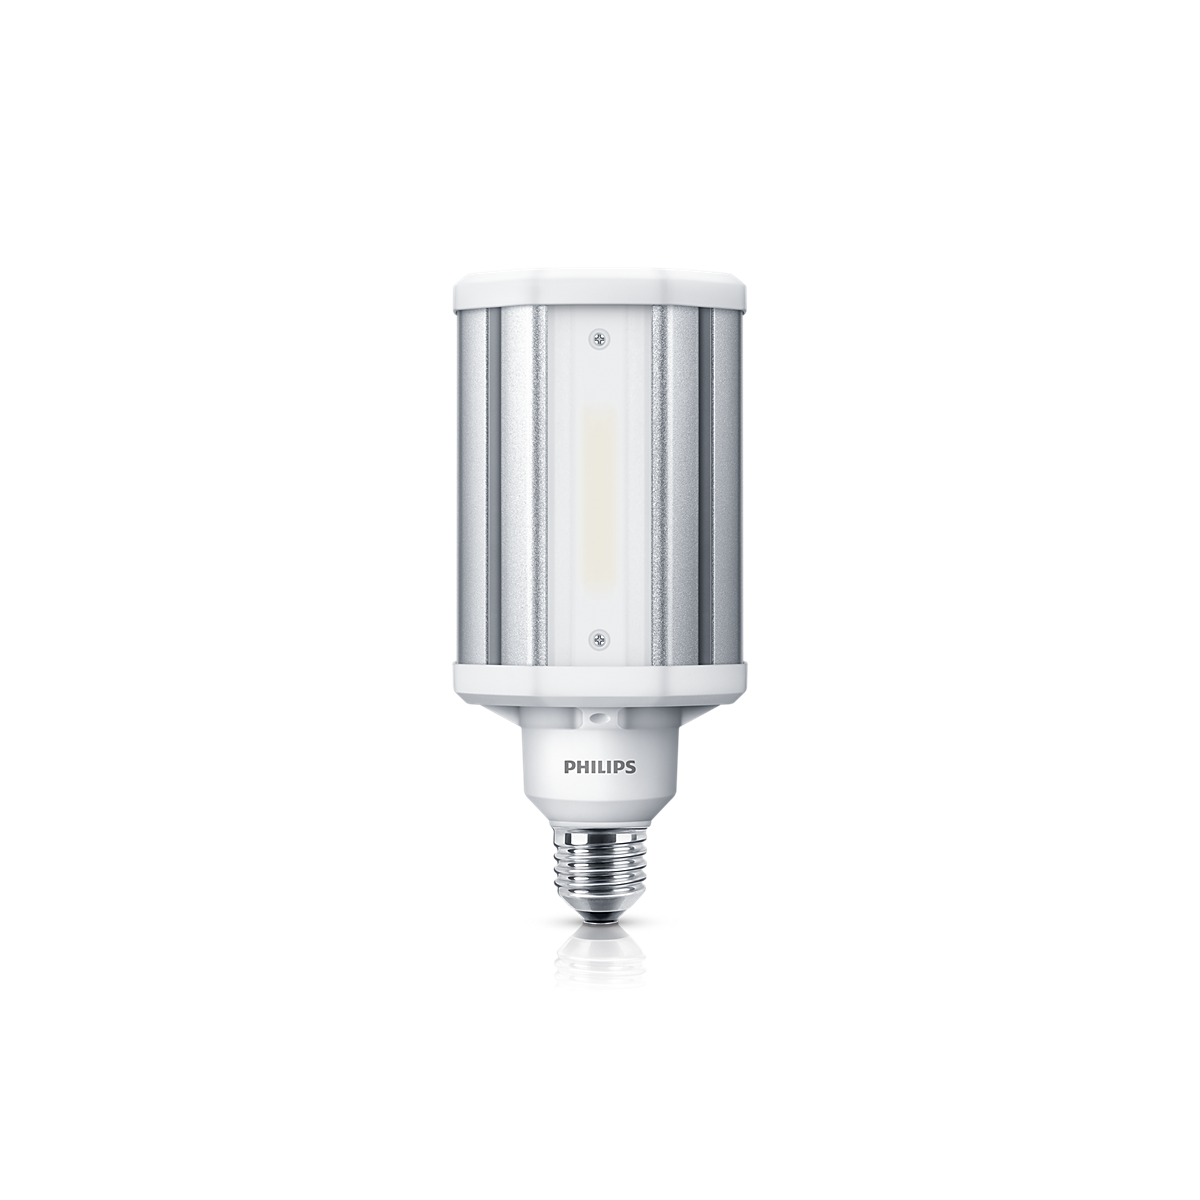 TrueForce LED Public (ciudad/carretera – HPL/SON)